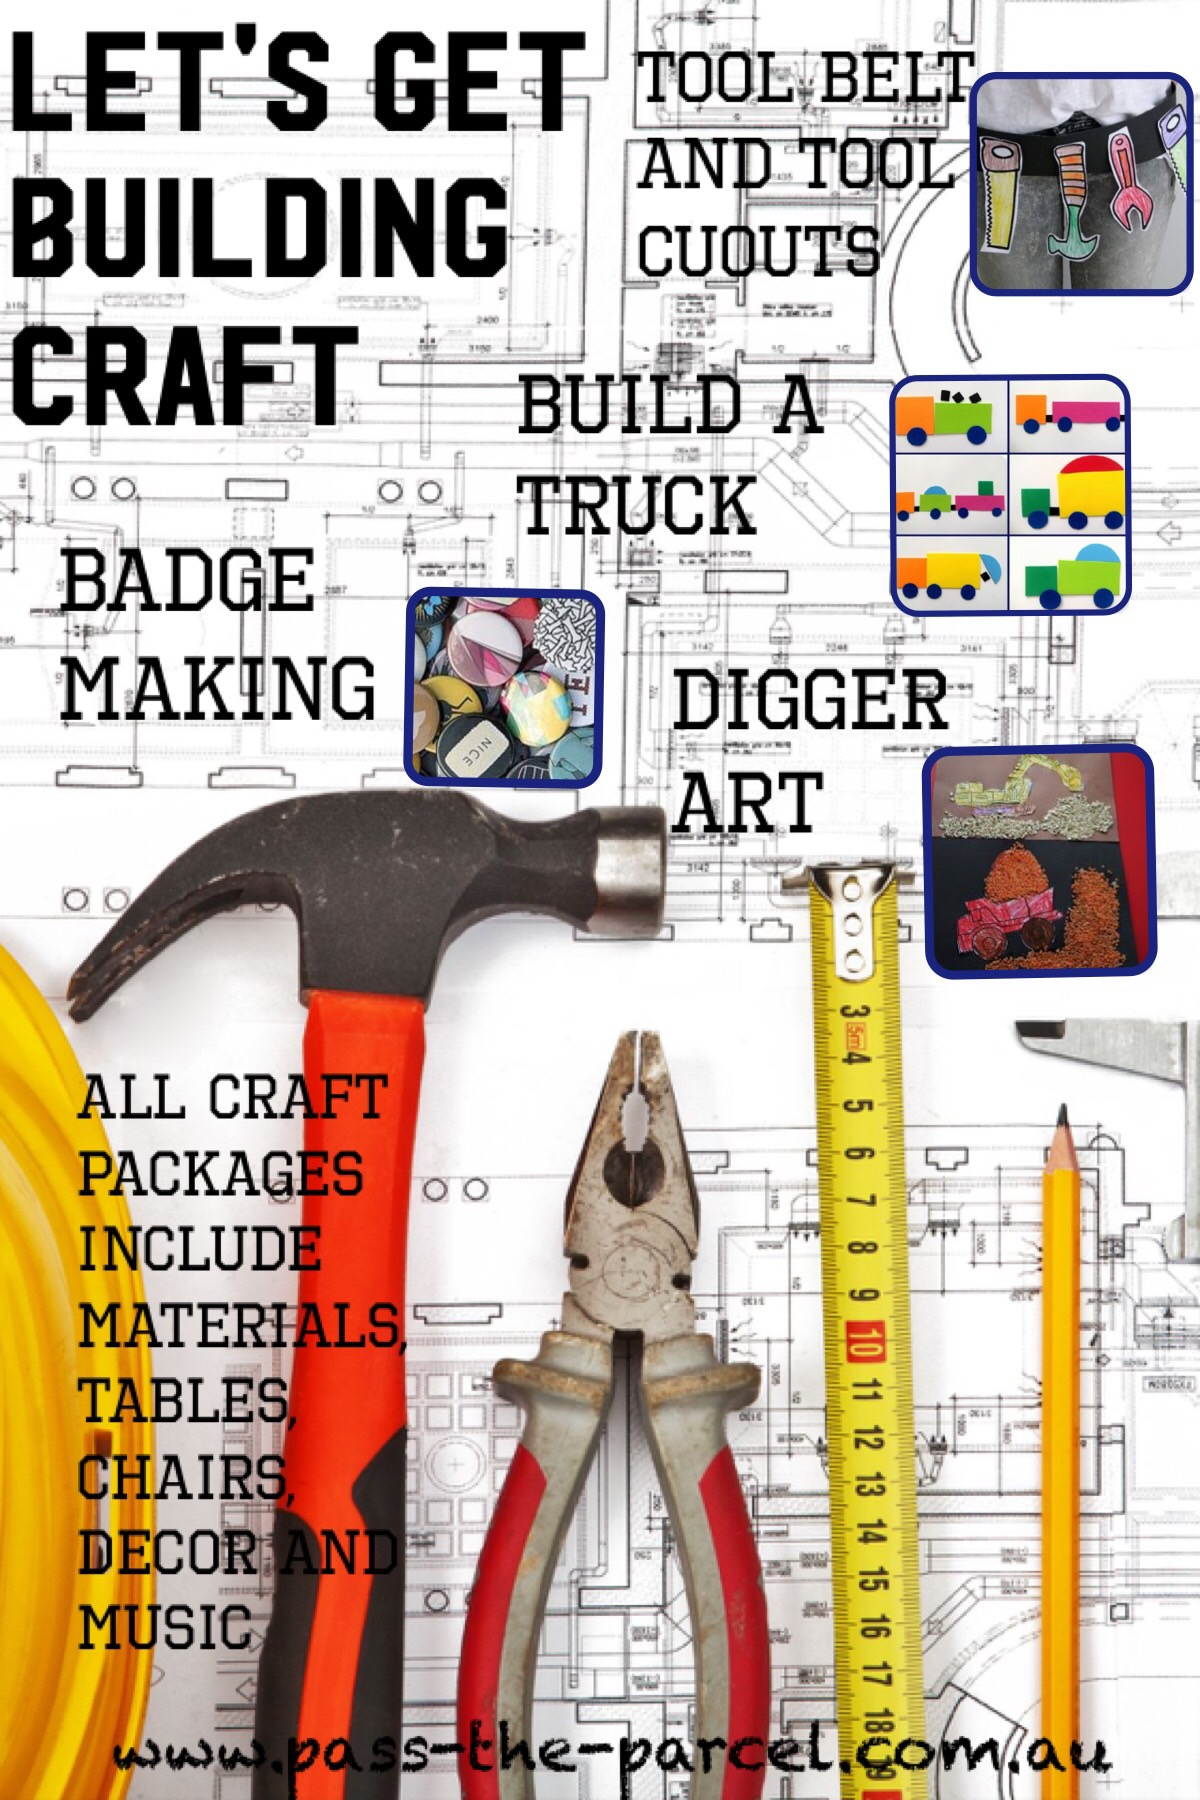 Building craft